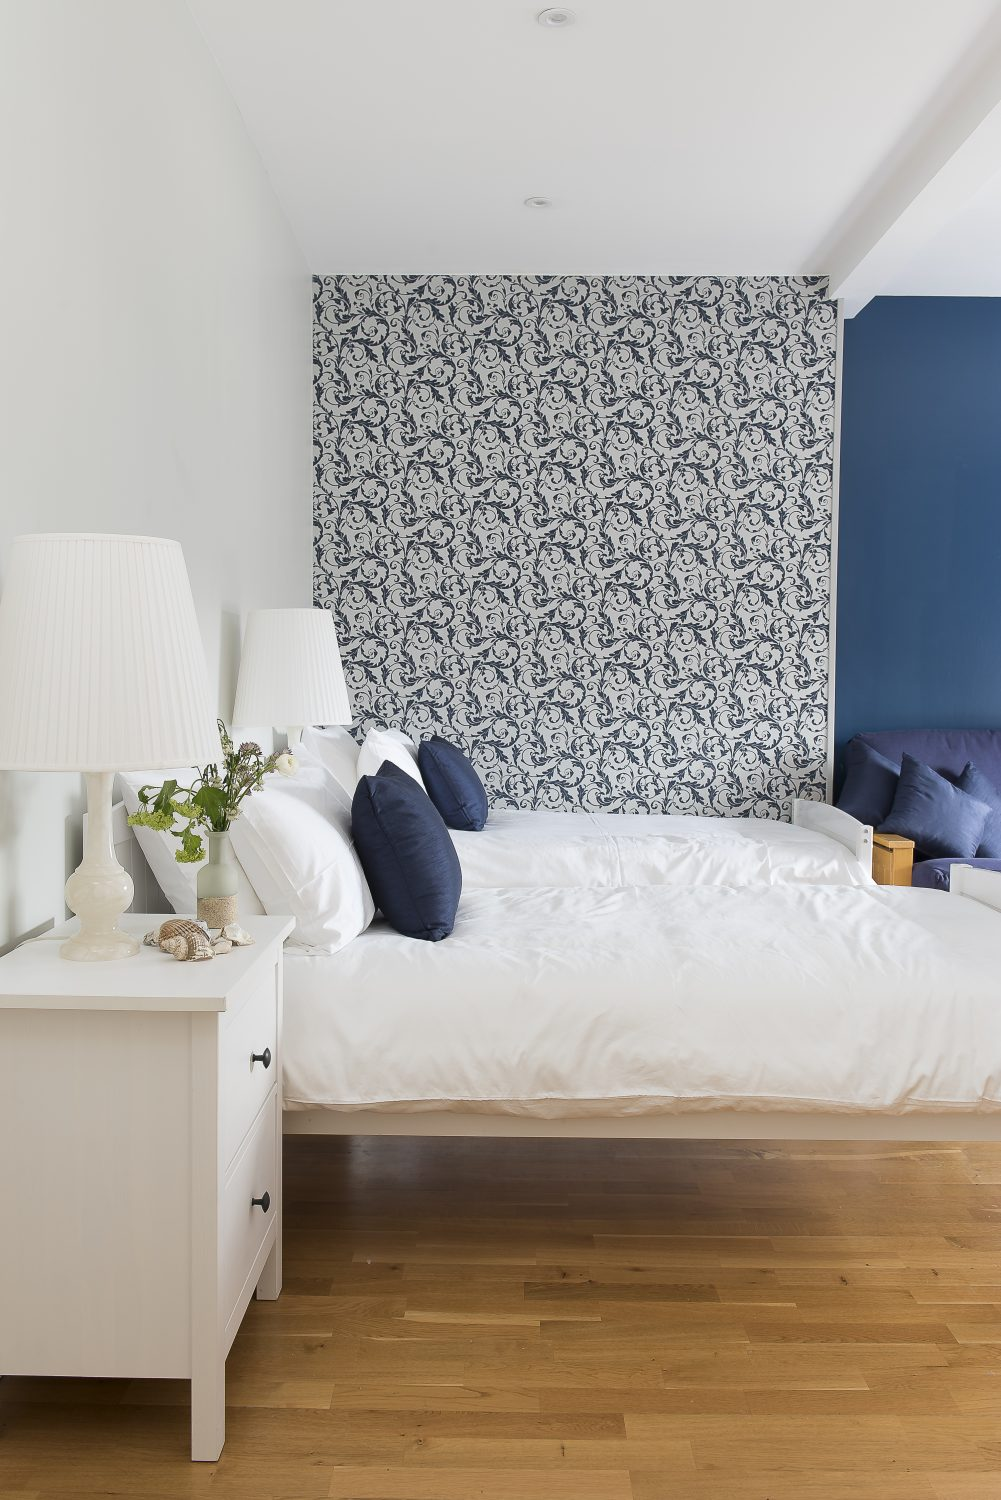 In this bedroom, a cool scheme of perfect whites and rich blues alludes to the house's coastal location